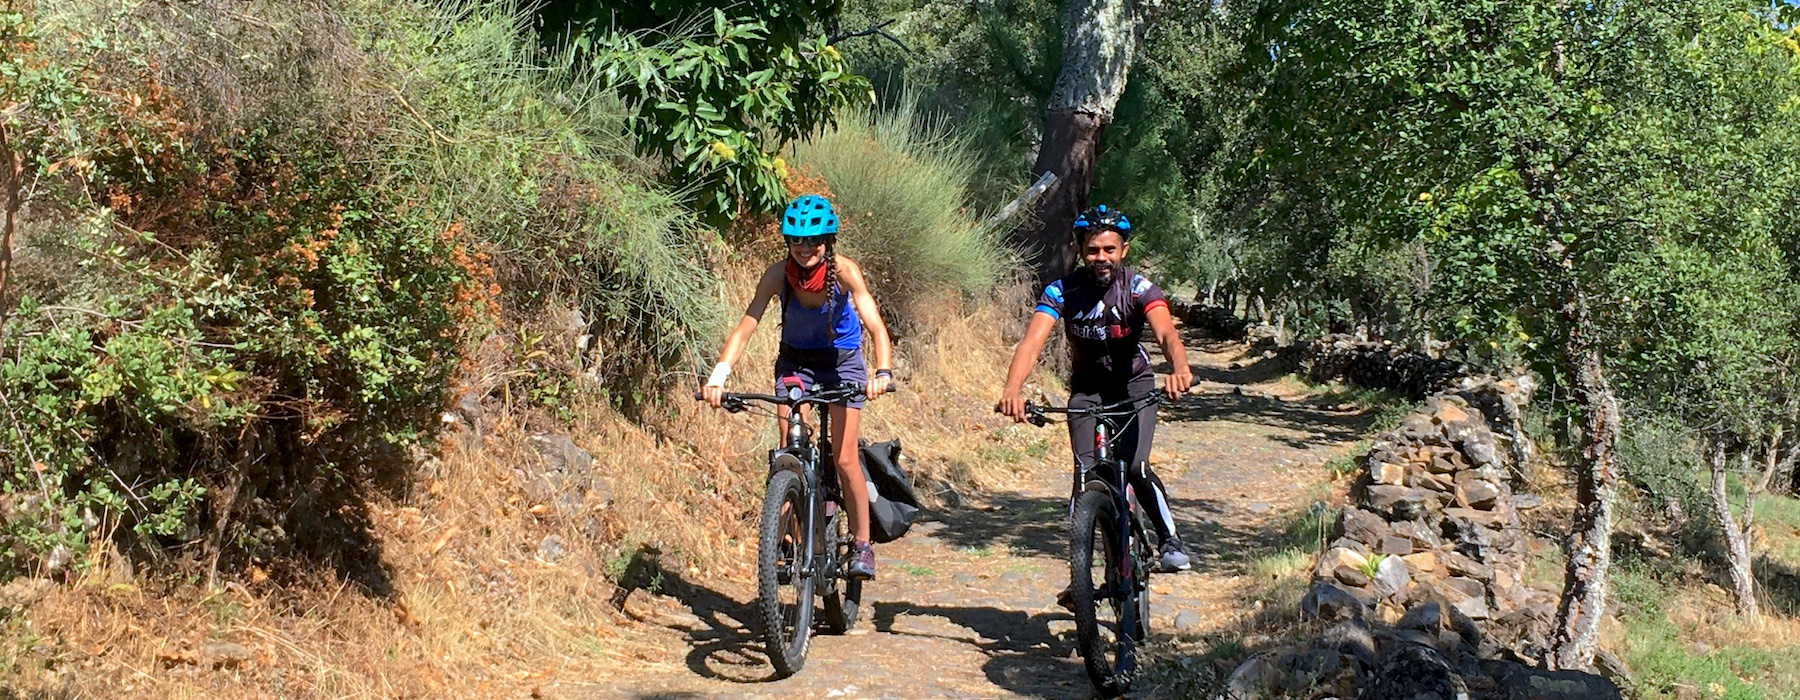 Bikers on unpaved trail